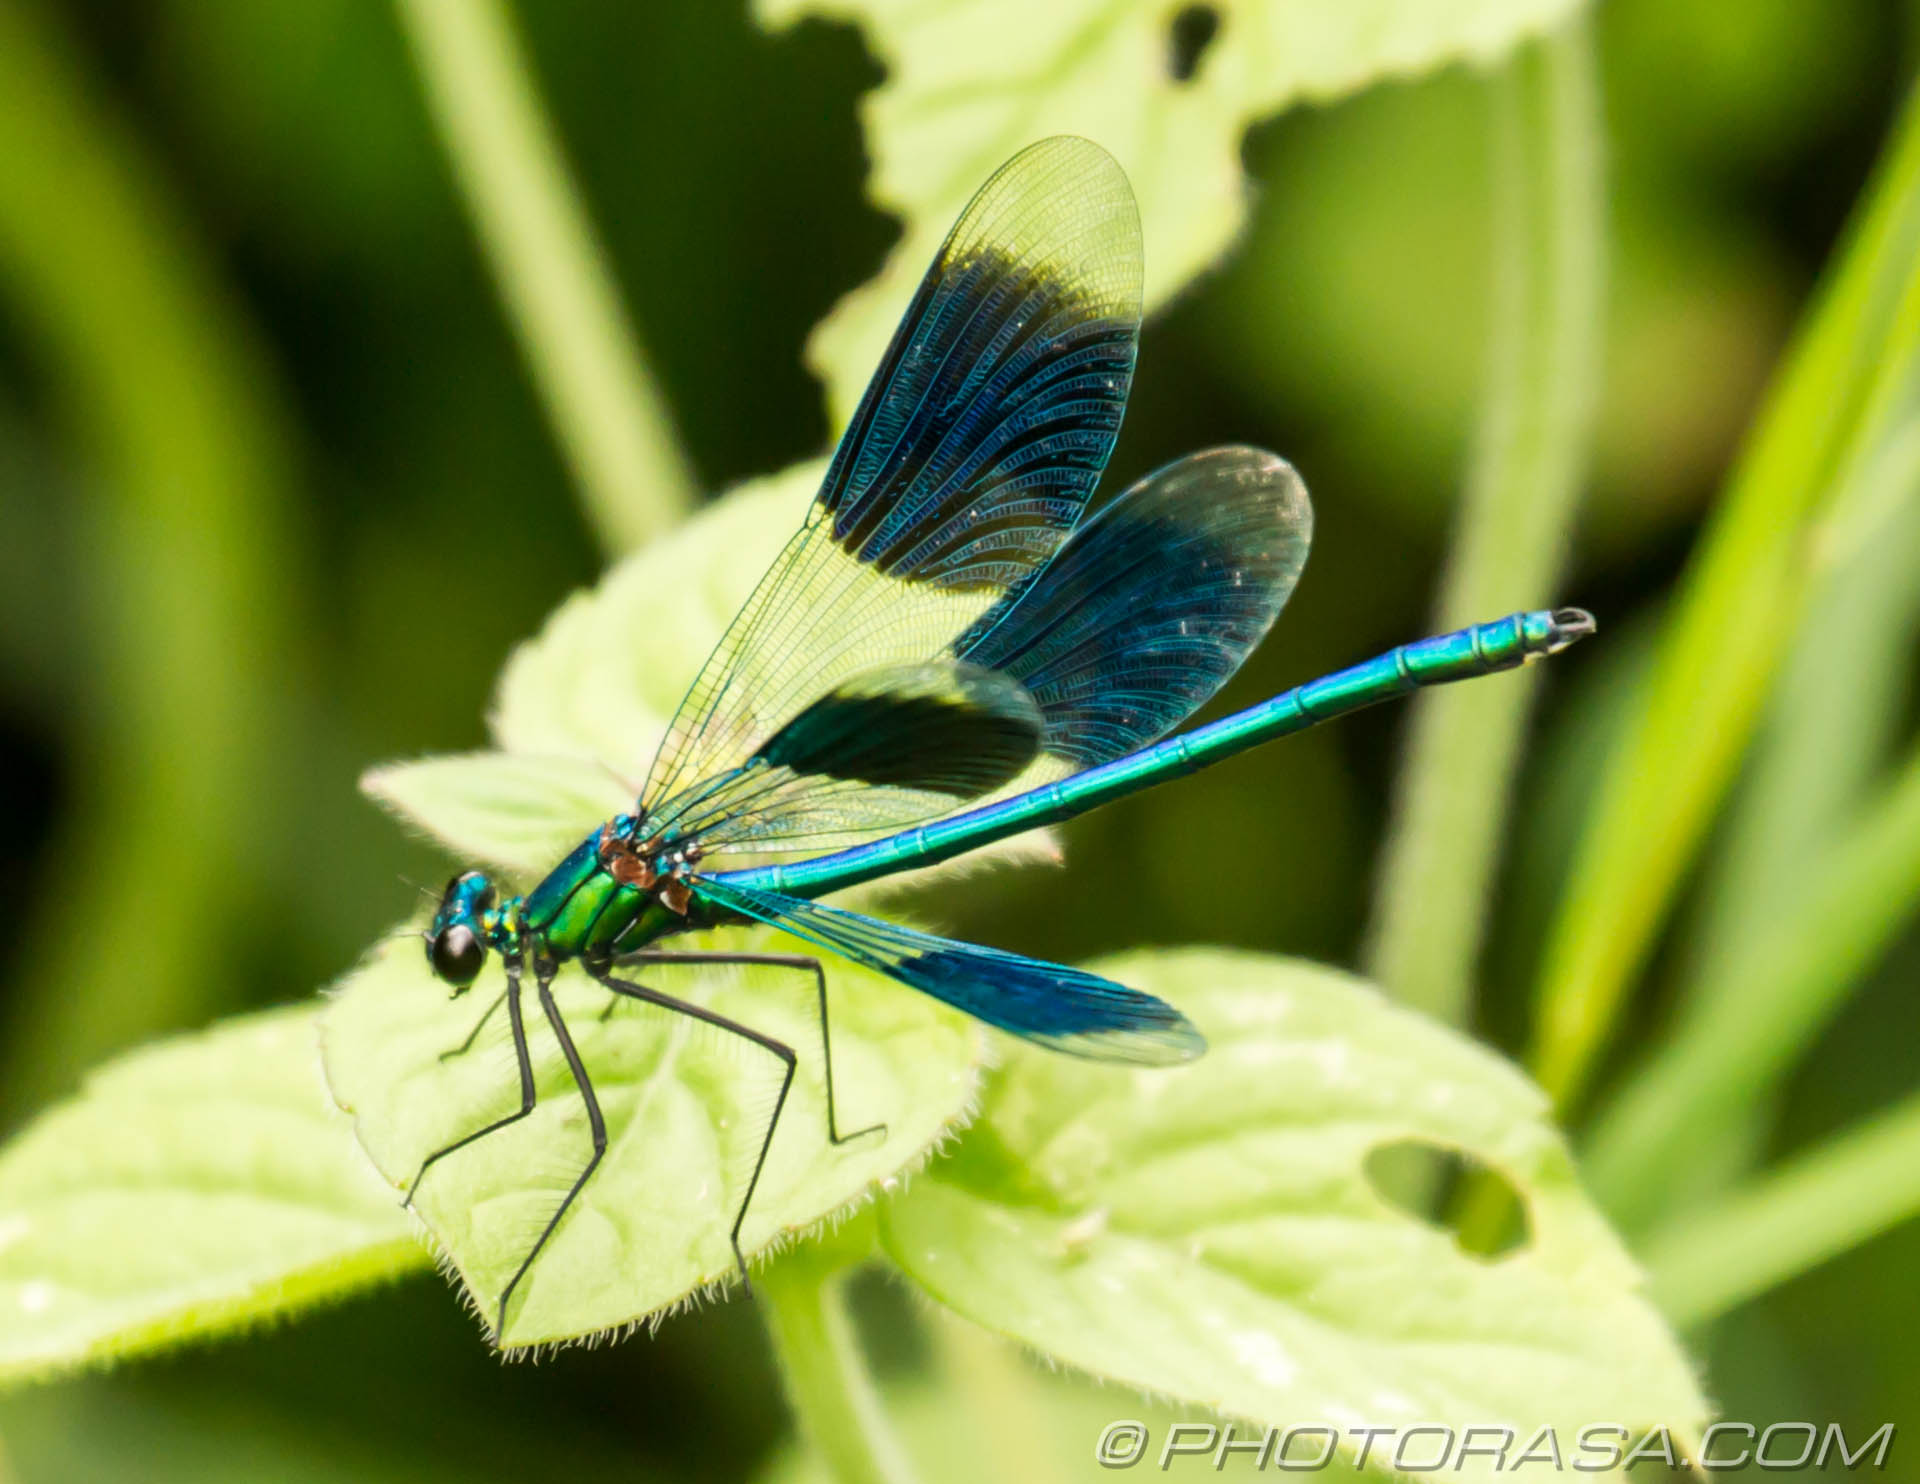 http://photorasa.com/damselflies/demoiselle-with-opened-wings/